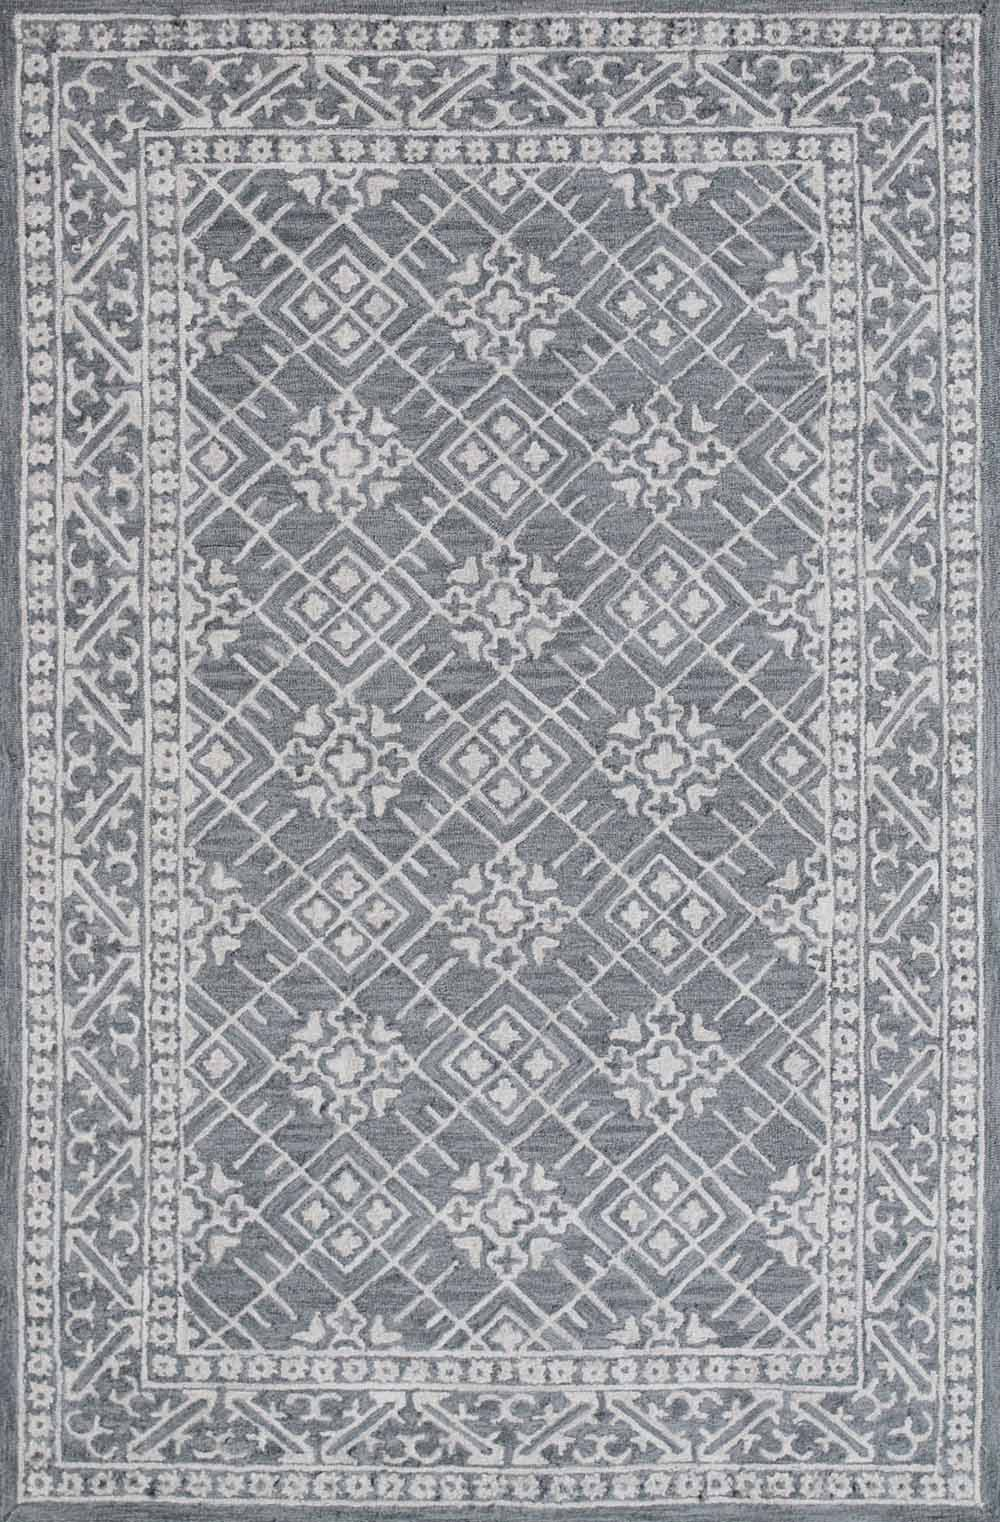 Dynamic Area Rugs Galleria 7855-509 Gray Geometric Design